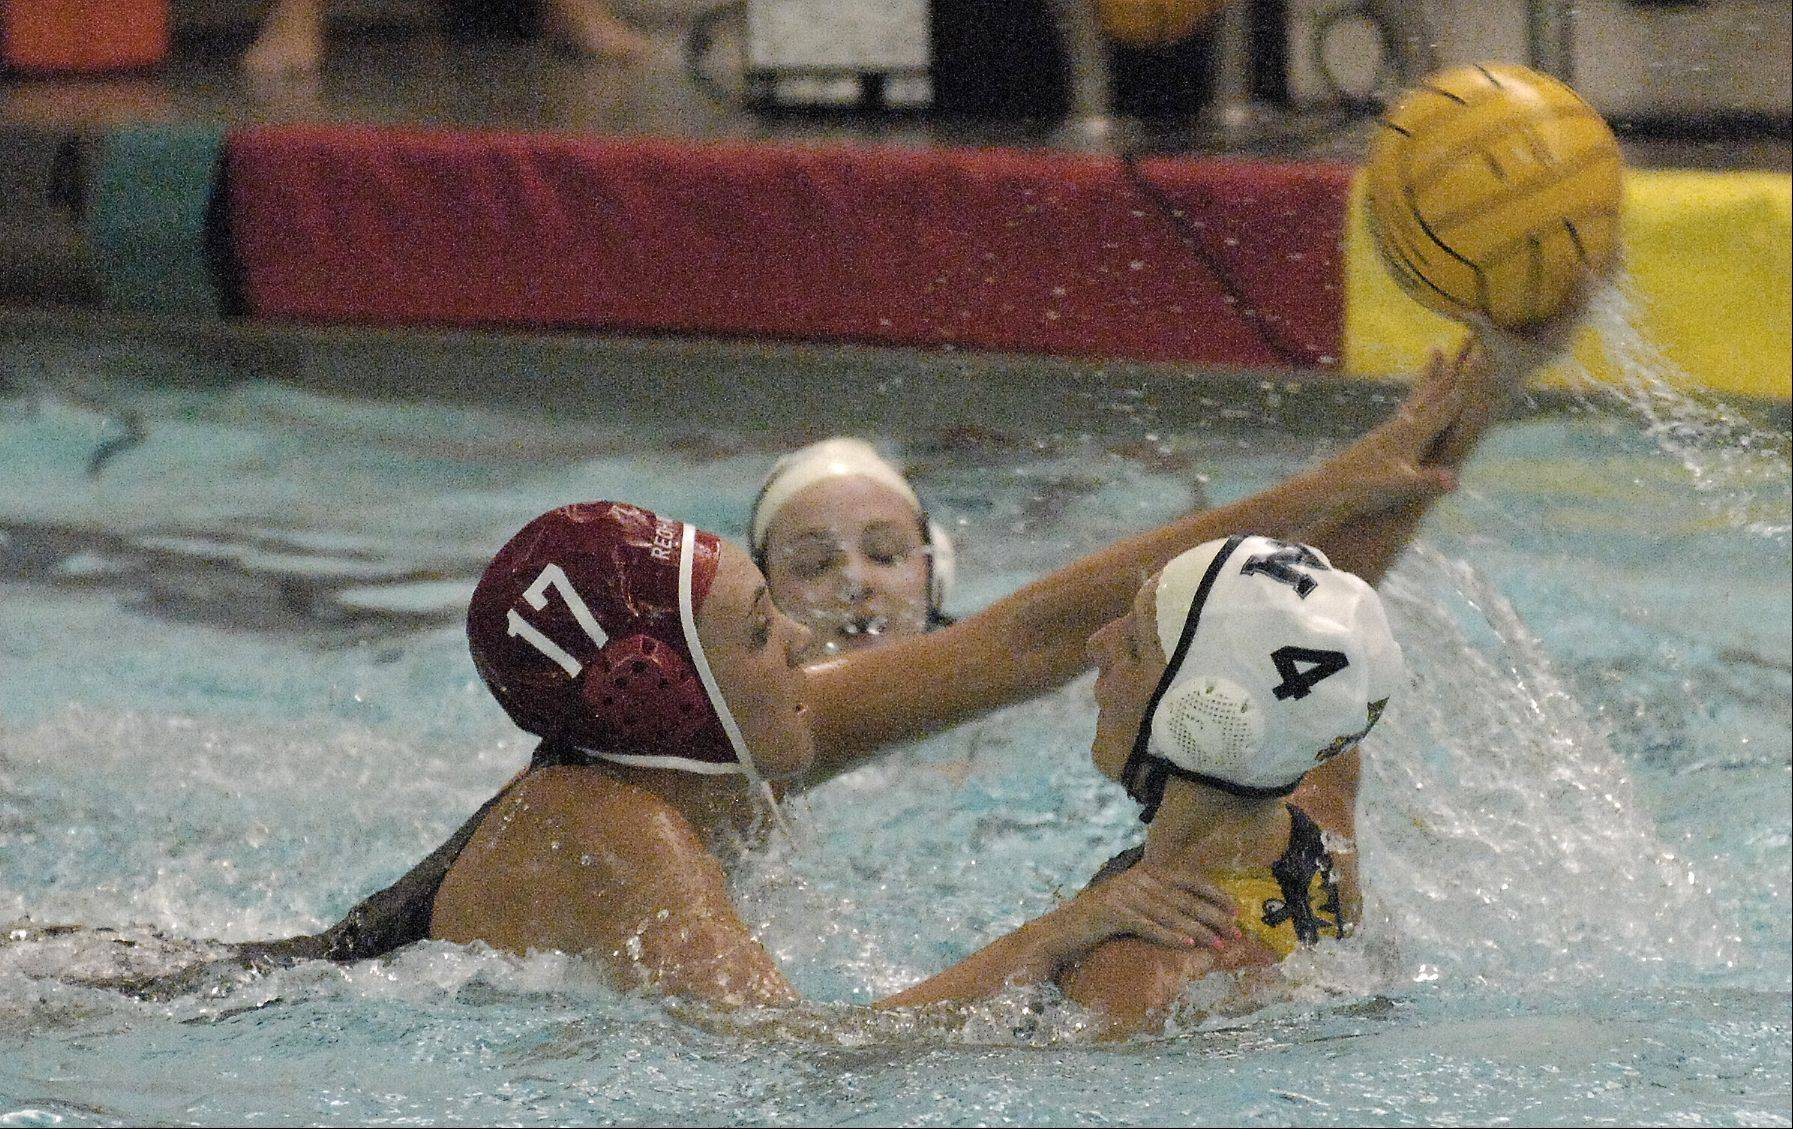 Michelle Spaits of Naperville Central and Morgan Miller of Neuqua Valley battle for control of the ball during varsity girls water polo at Central, Thursday.